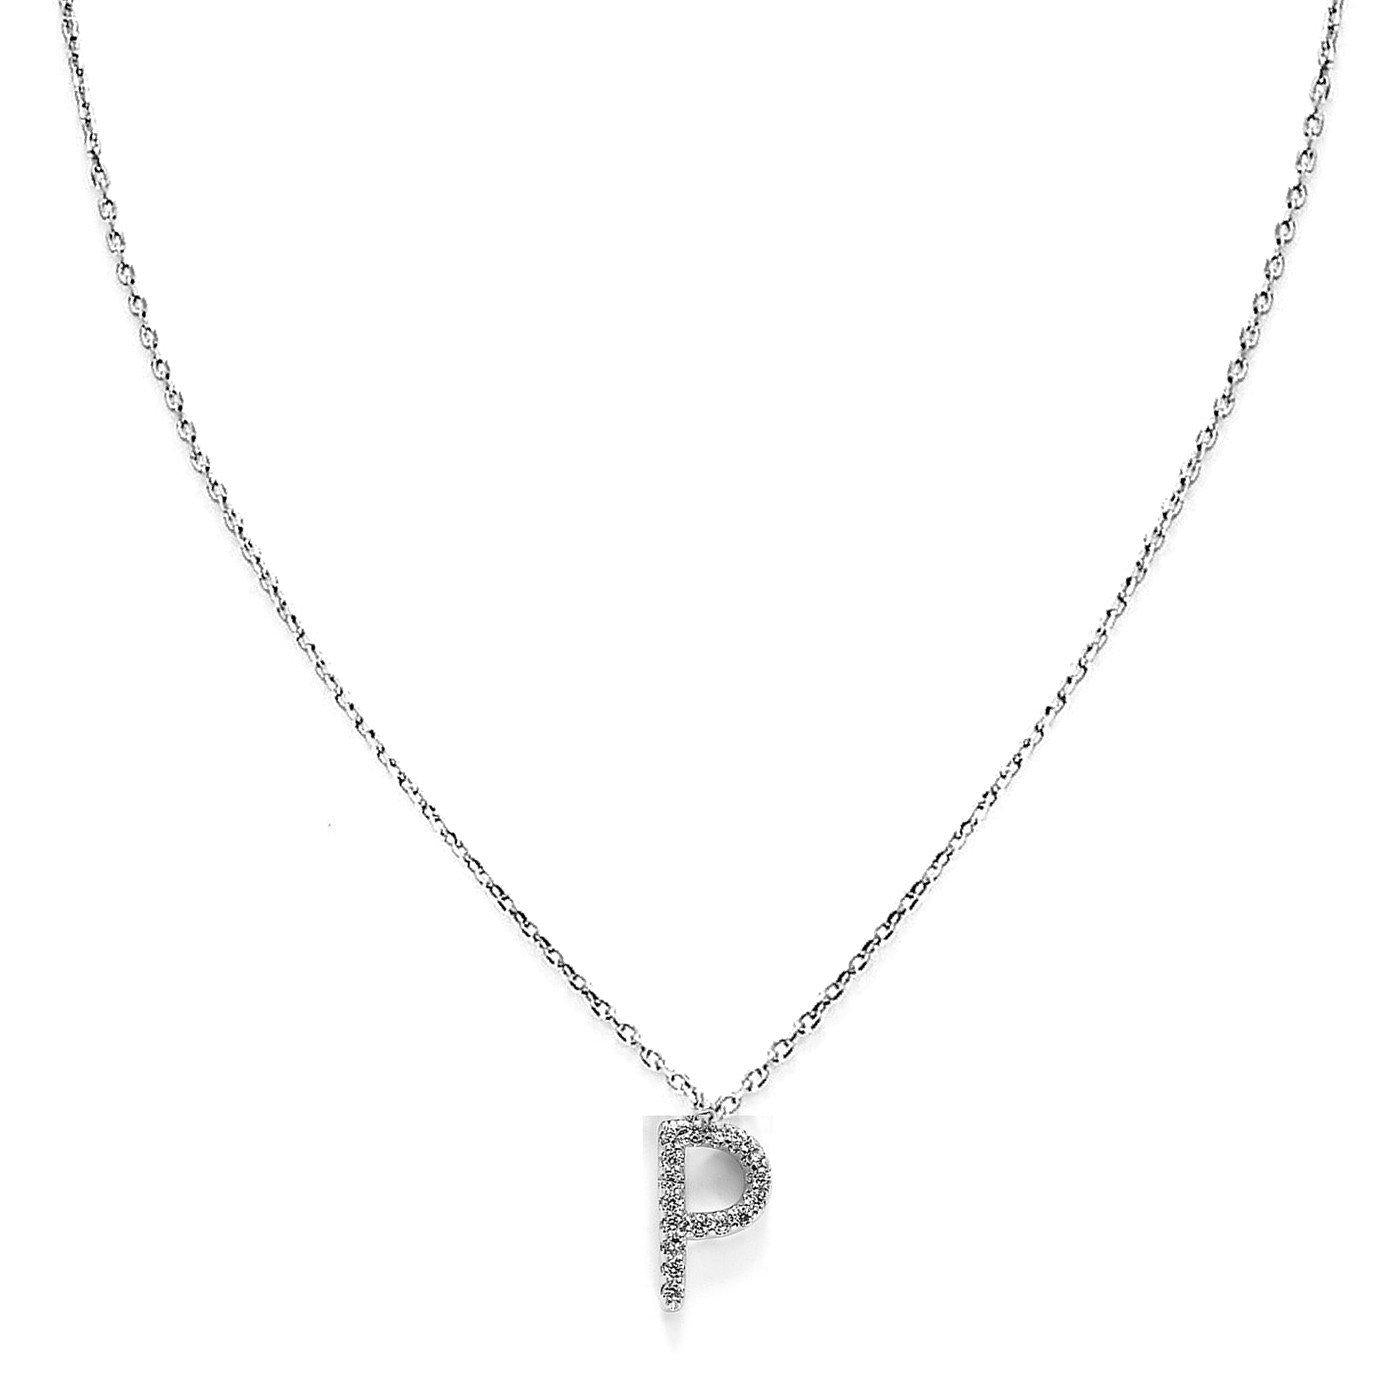 Your Initial P Necklace-Blinglane